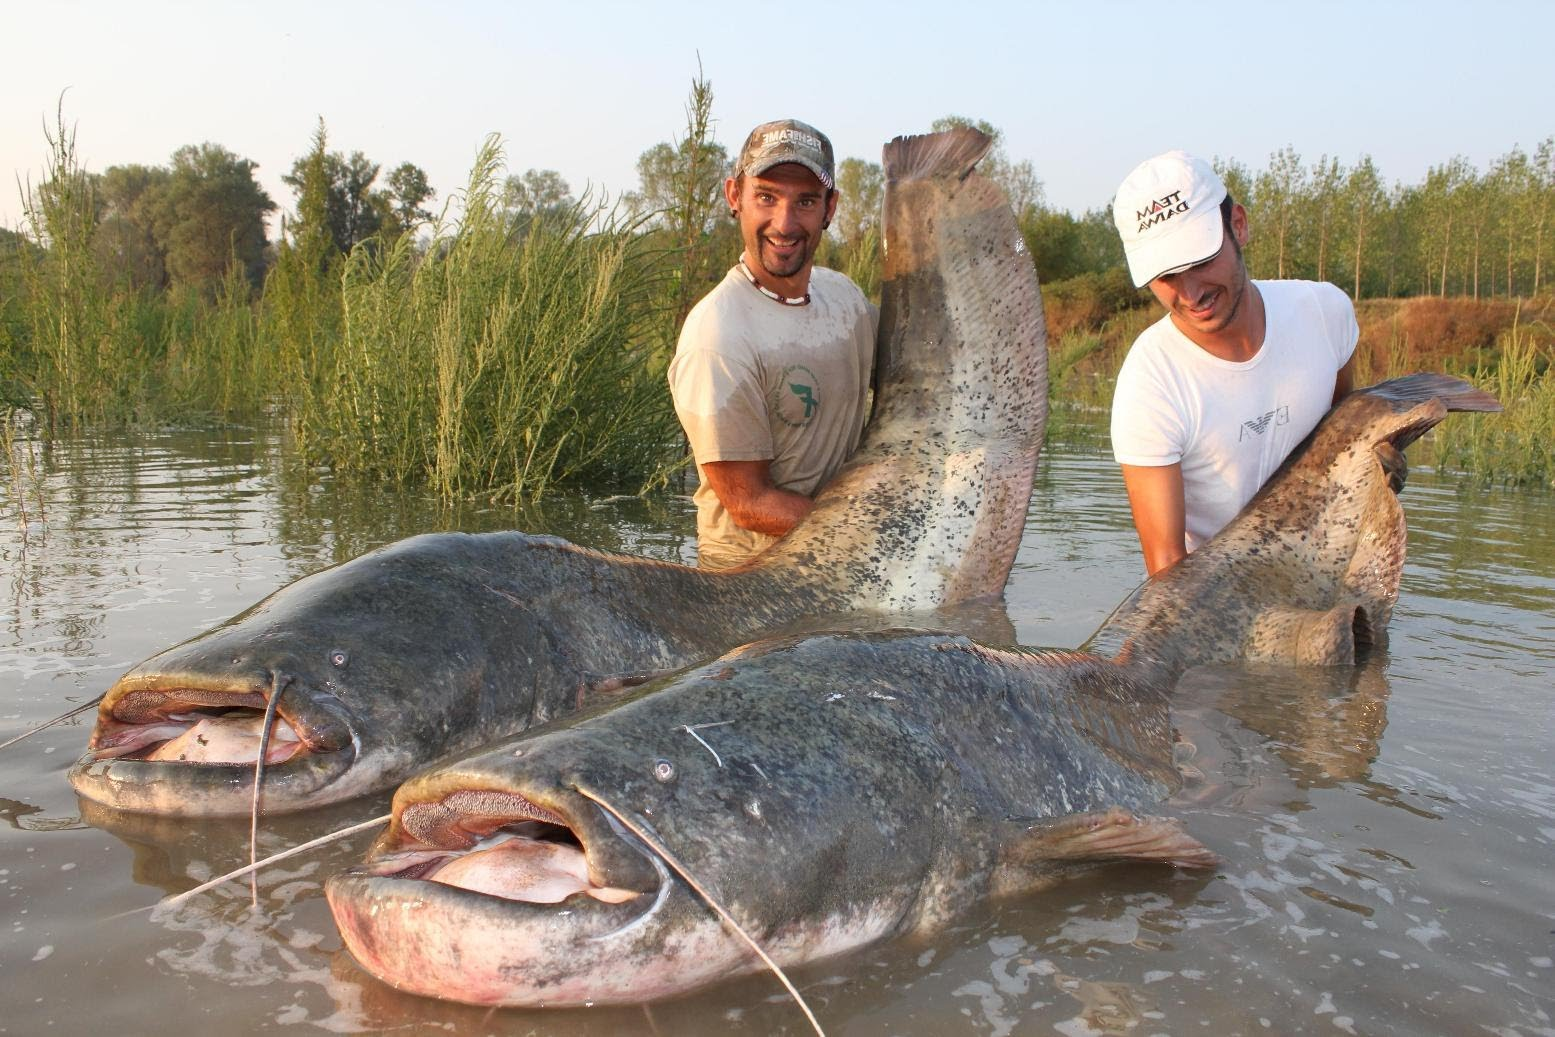 9 Stunning Facts about the Worlds Biggest Catfish Caught